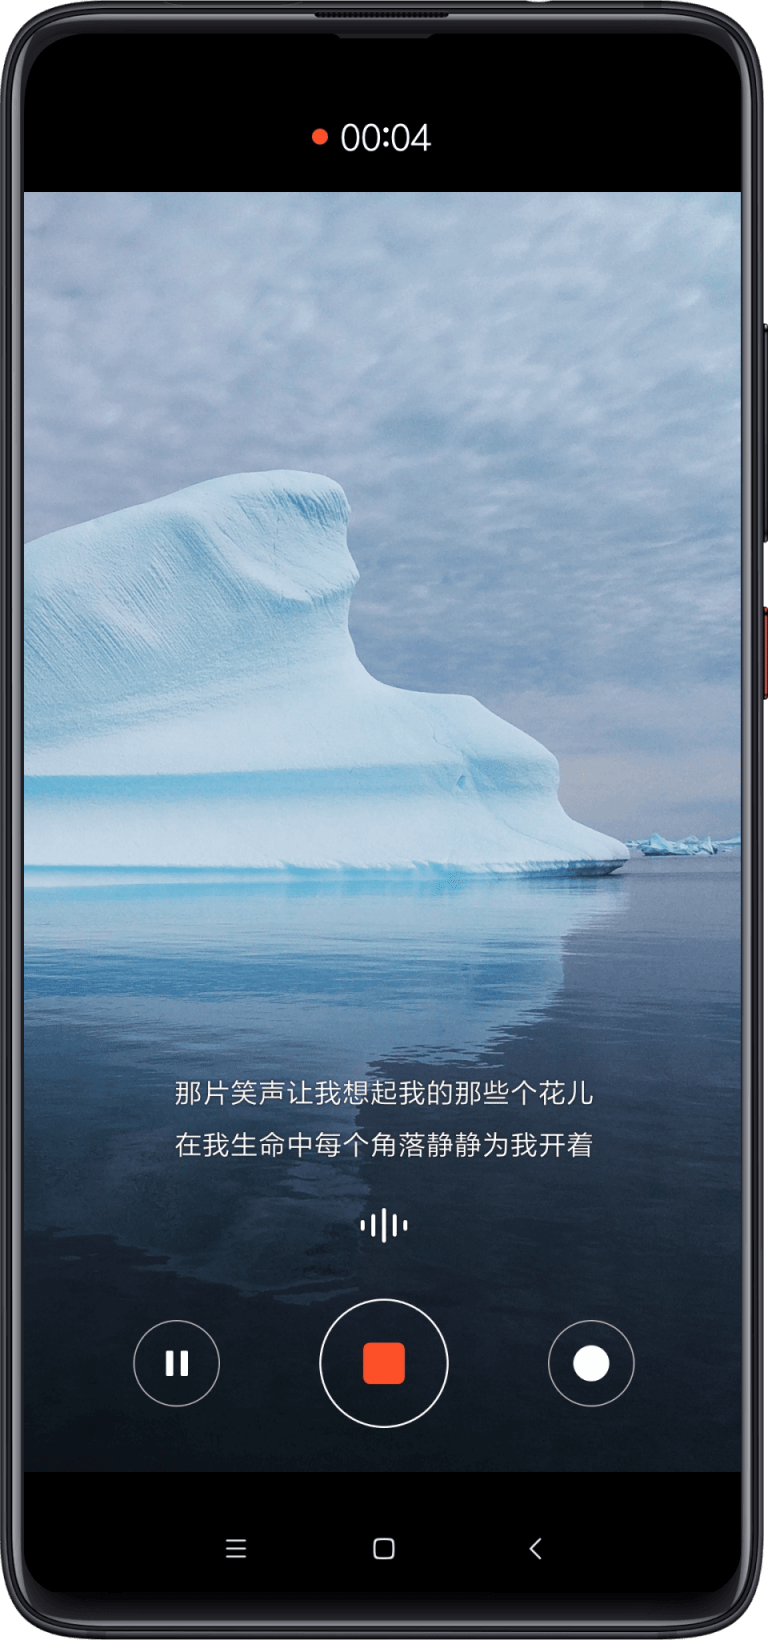 Picture camera voice subtitle function page